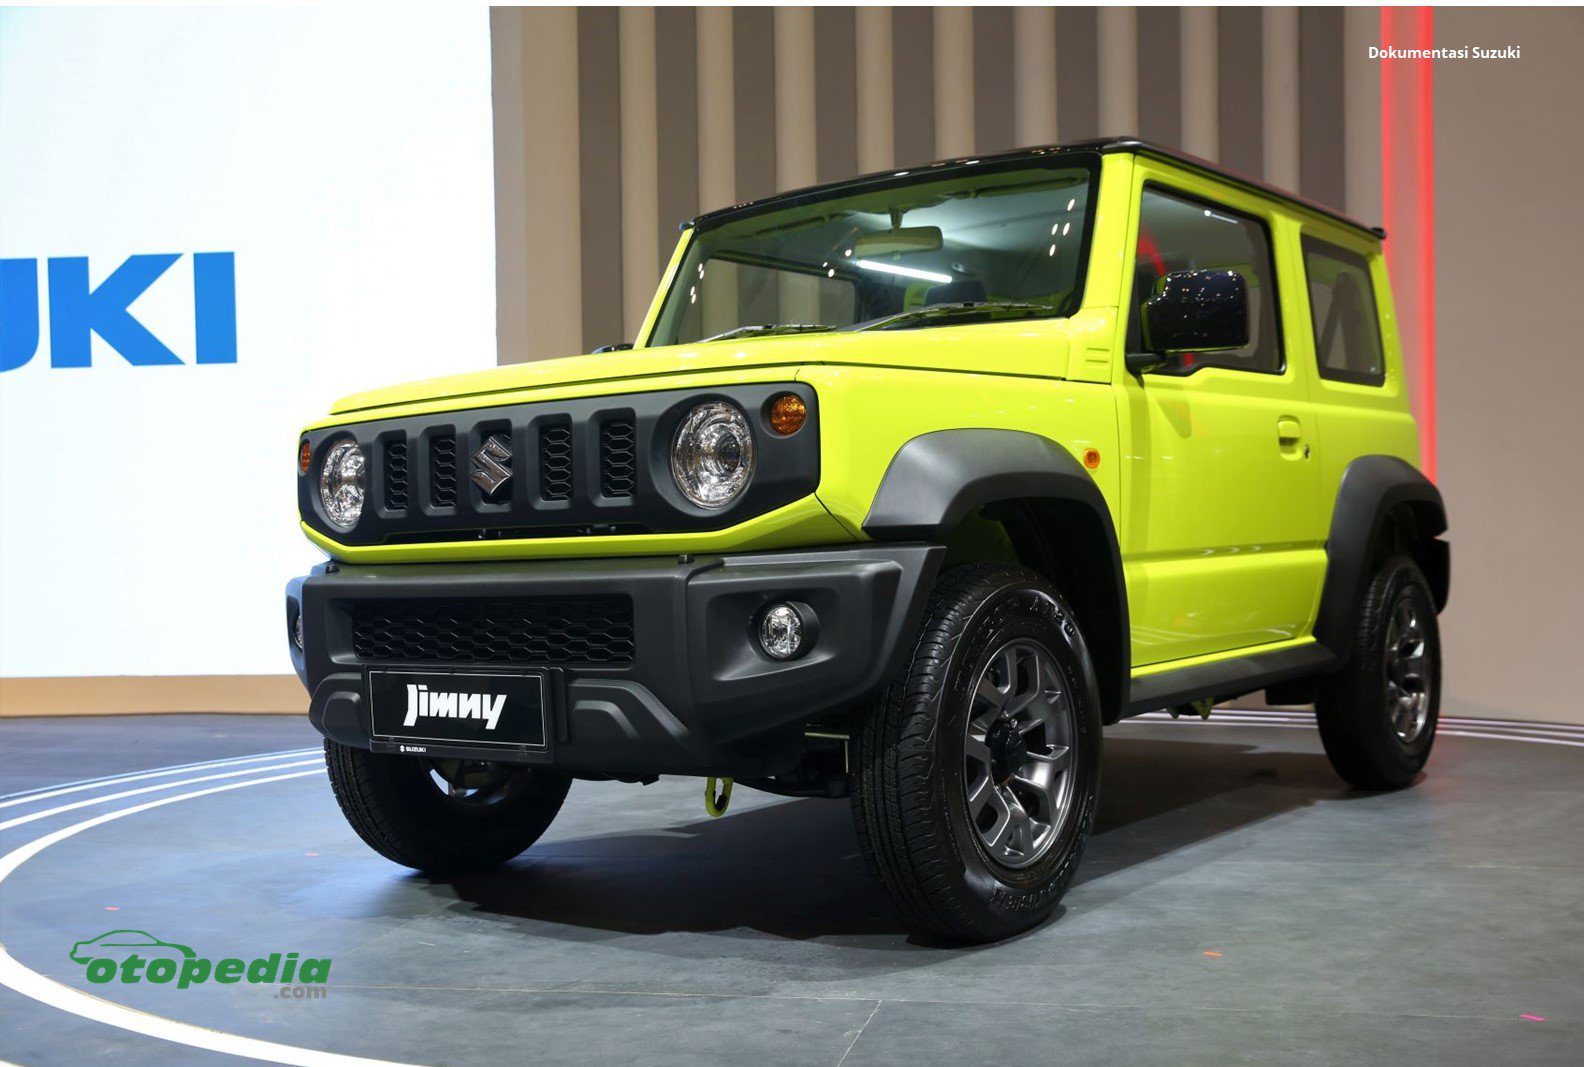 /media/images/Suzuki_Jimny_N7nzEmS.original.jpg